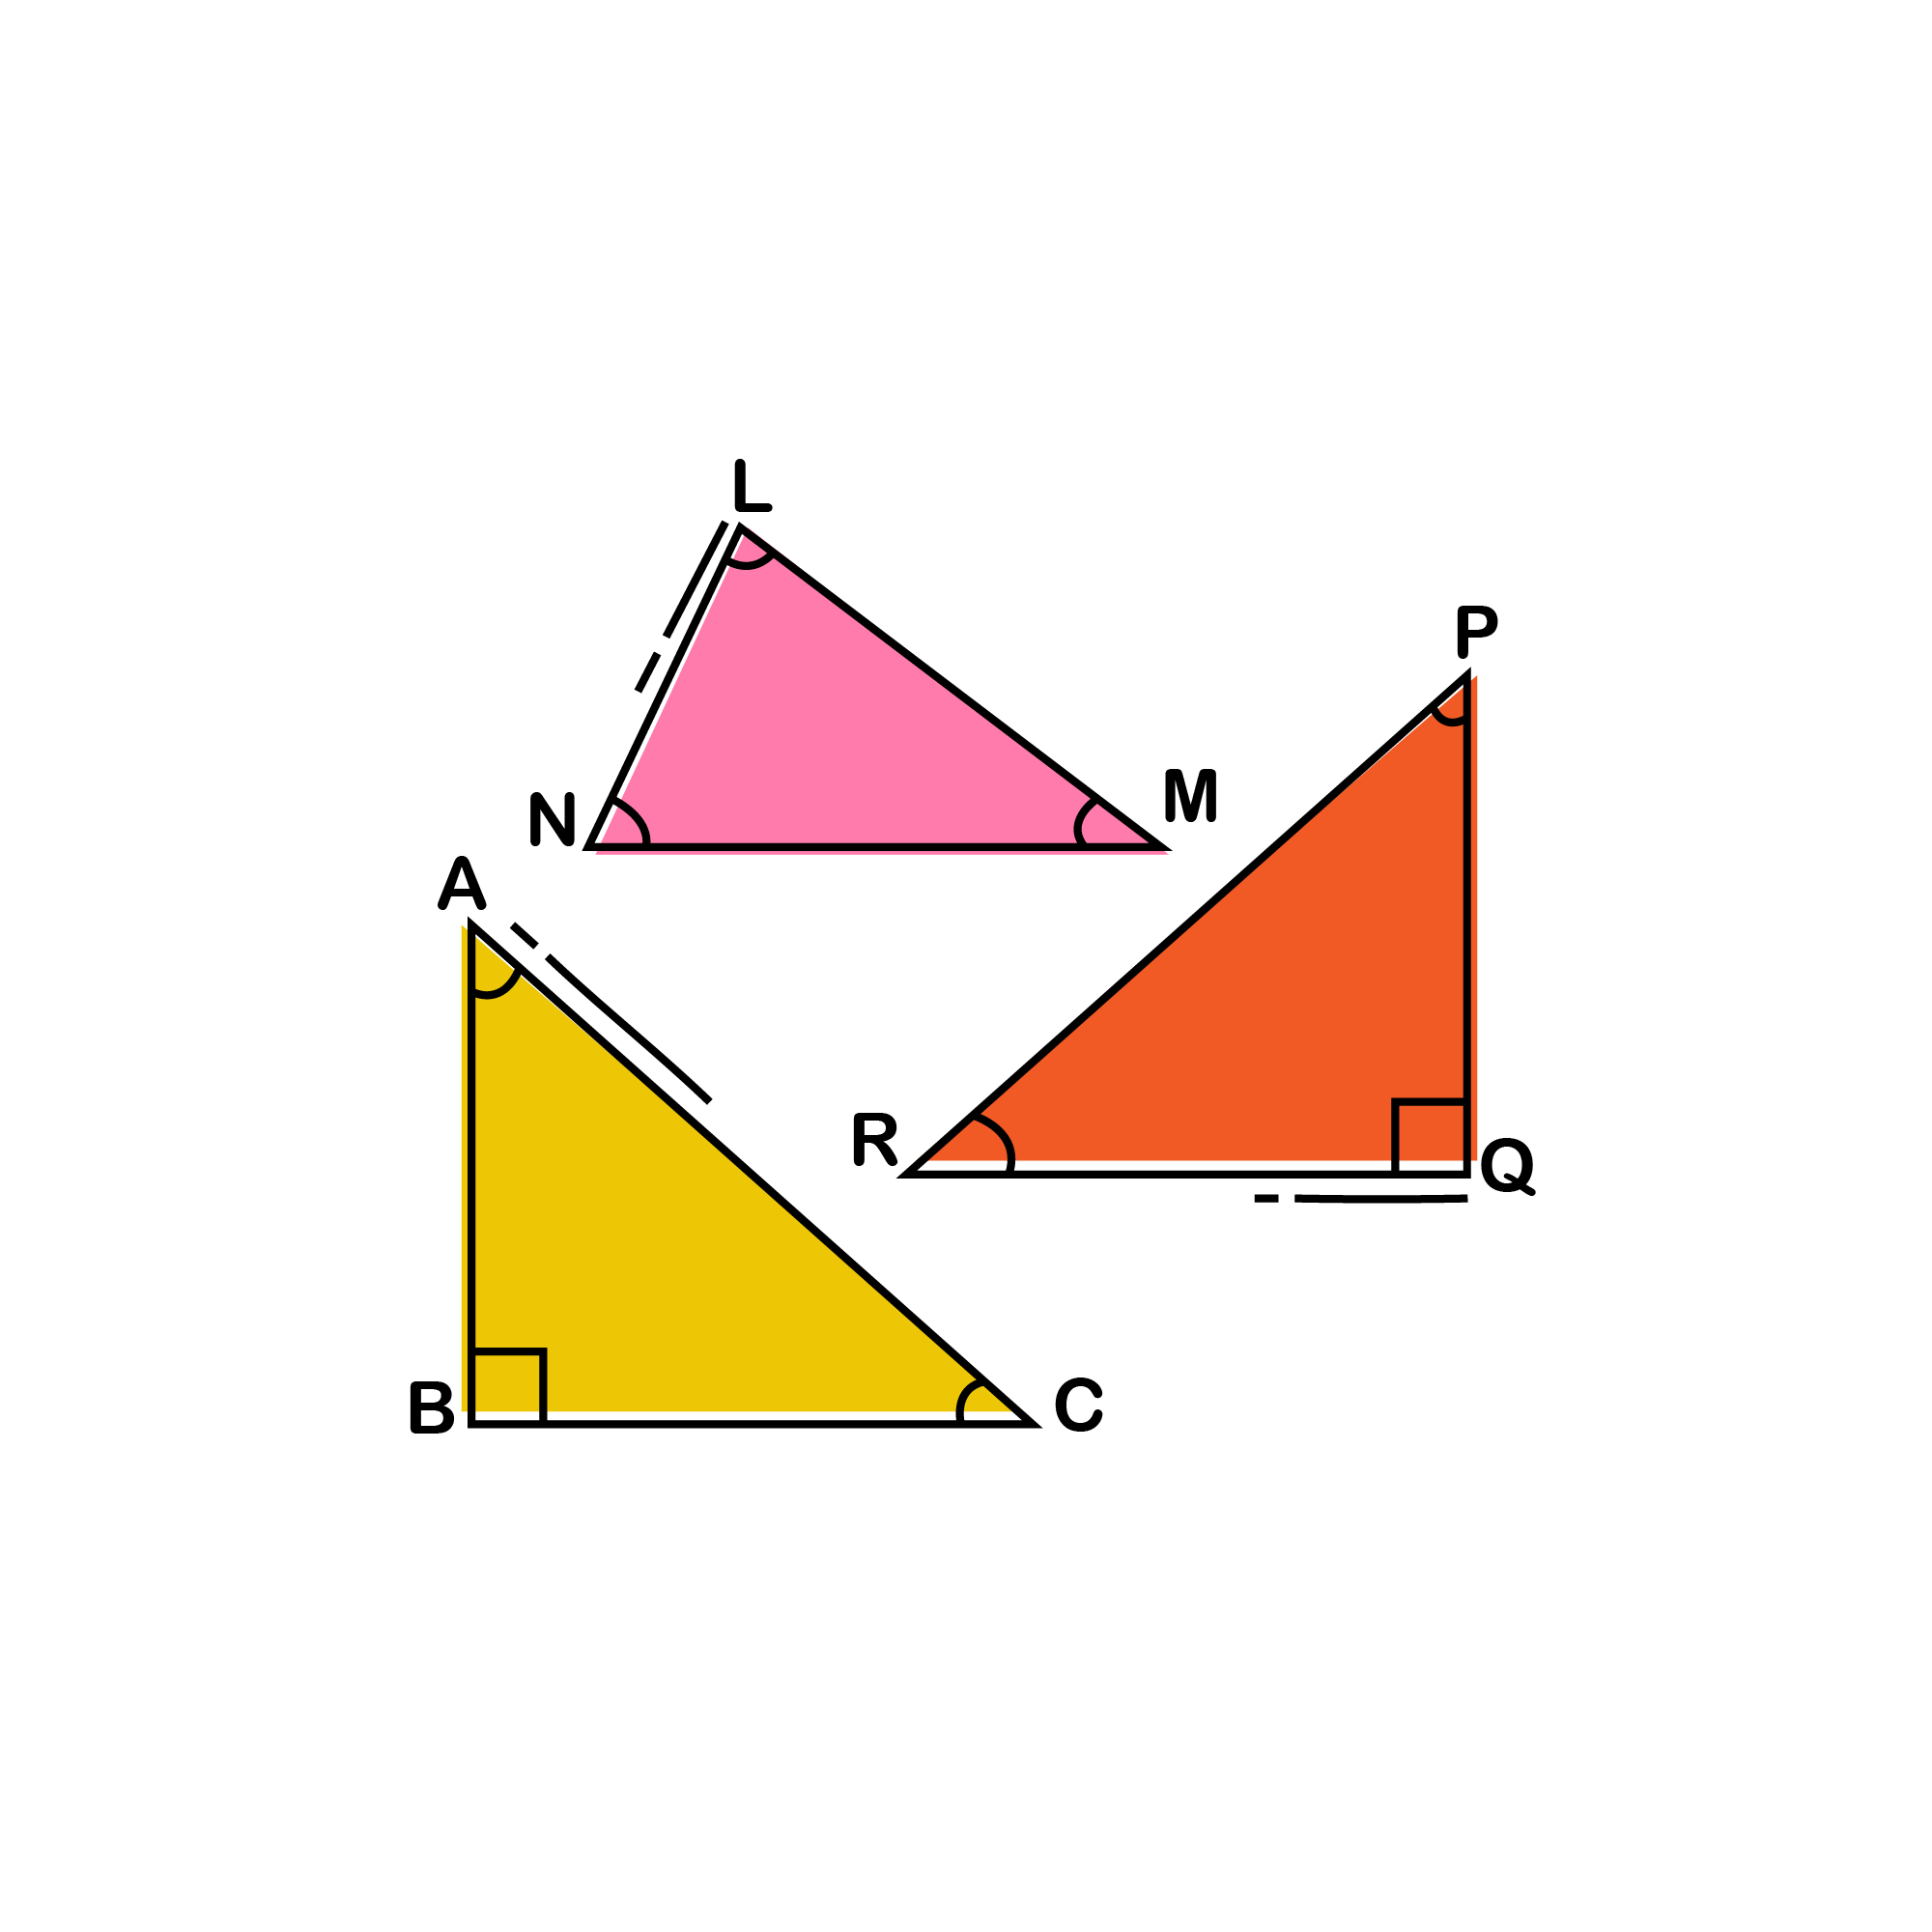 The SAT is absolutely obsessed with triangle-based problems, and as a result, the SAT Math section includes many questions on the SAT Math section. The following set of formulas will help eradicate your trouble once and for all.